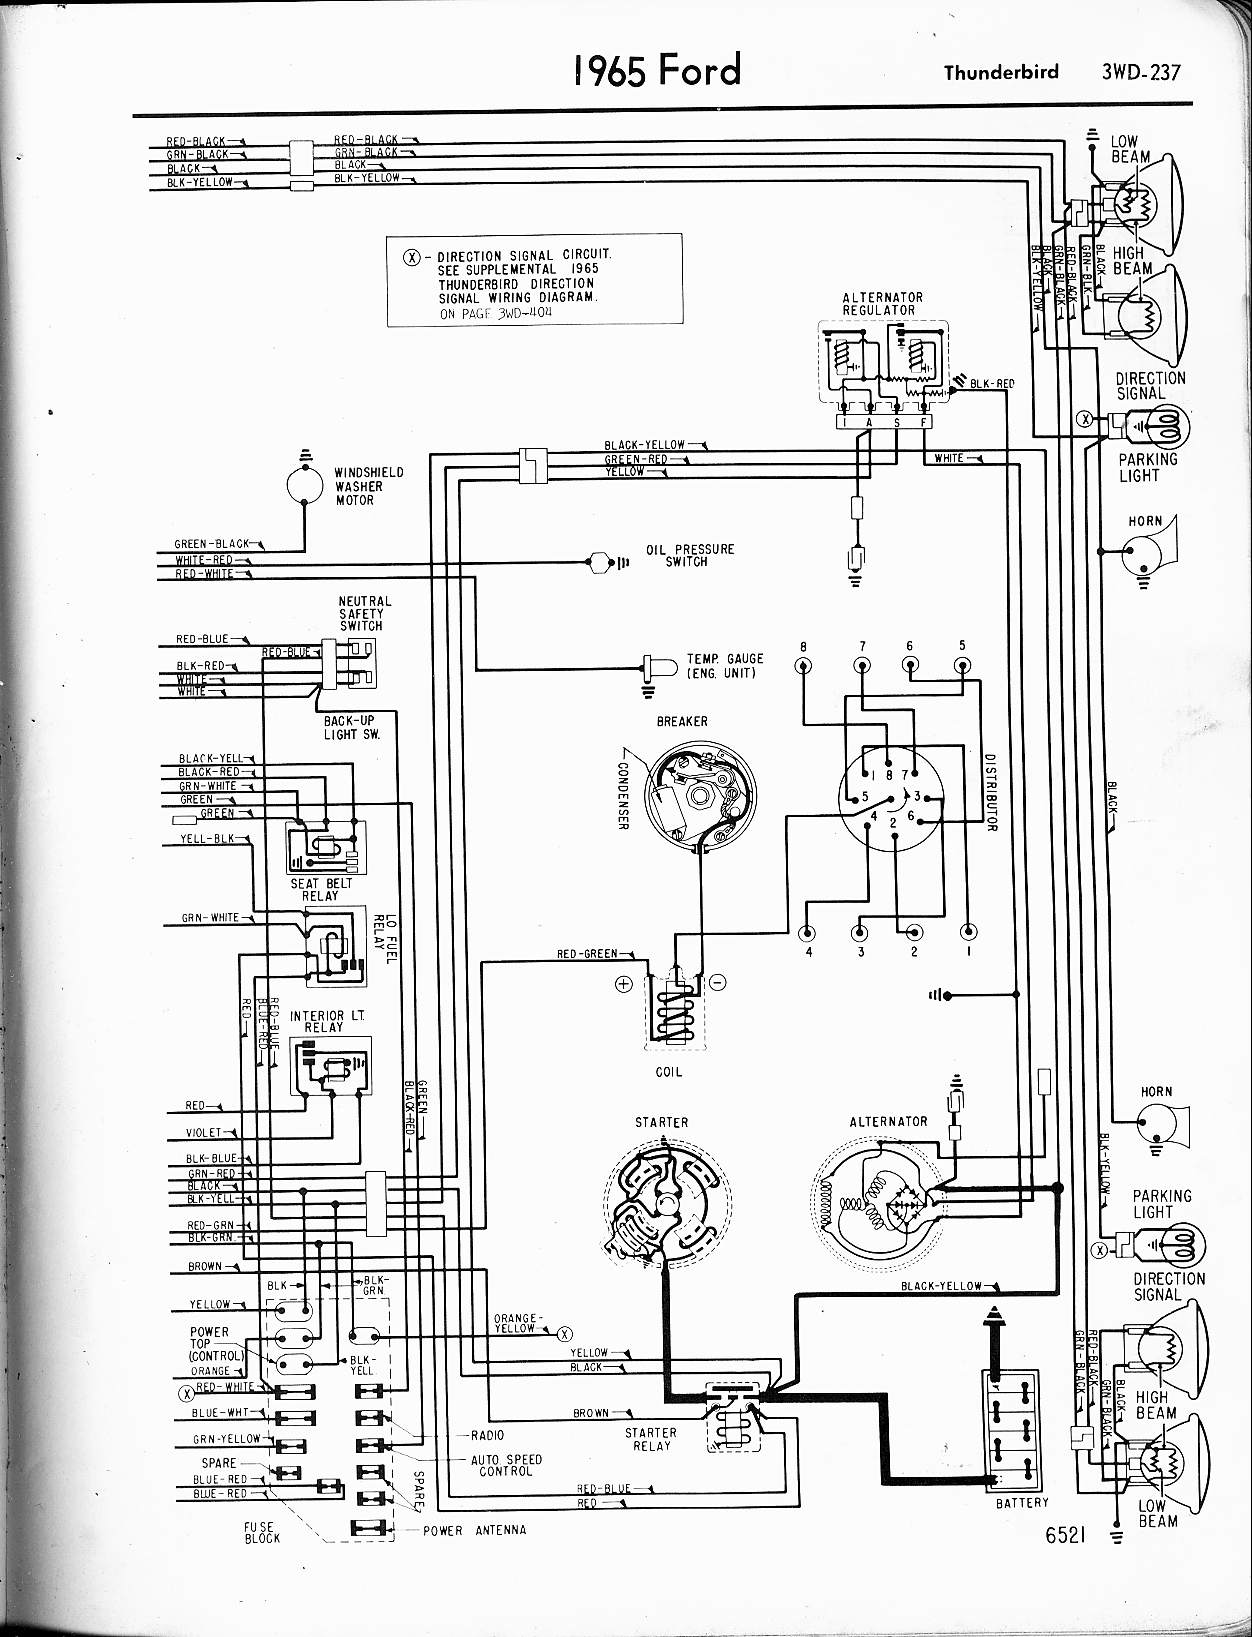 57 65 ford wiring diagrams 1965 thunderbird right